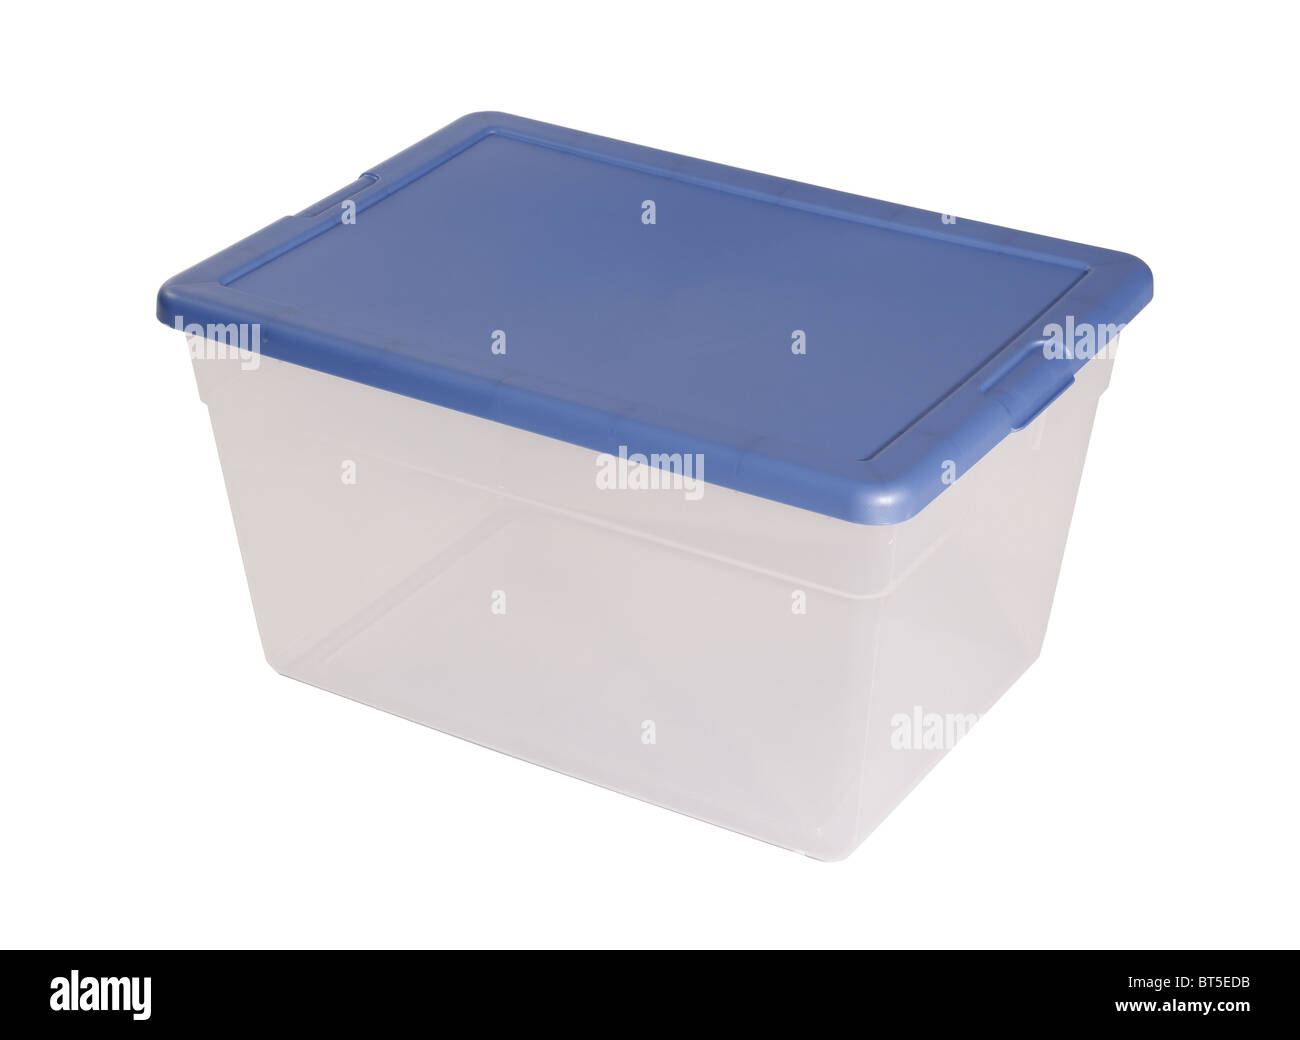 Plastic container elevated view - Stock Image